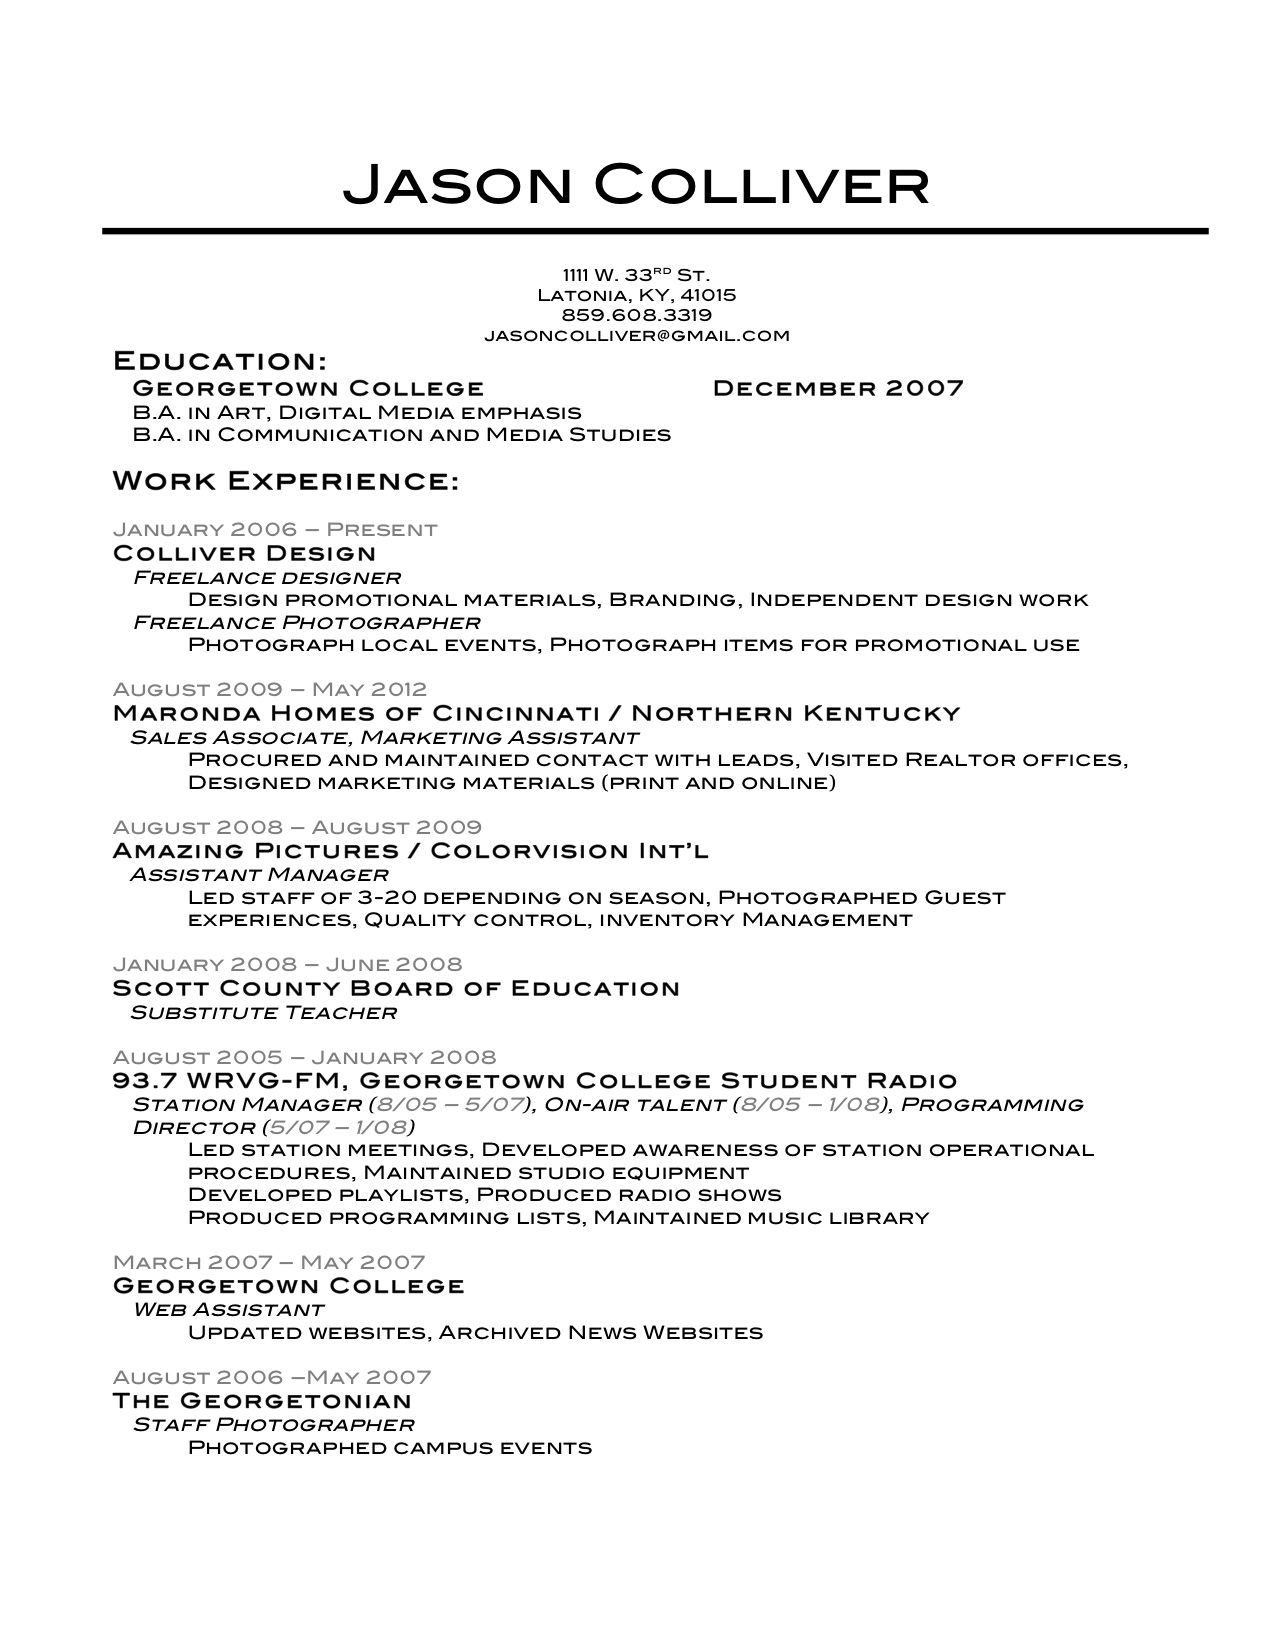 The Best Resumes click here to download this training engineer resume template httpwww Your Dream Job Best Font For Resumes Font For A Resume Best How To Make The Your Dream Job Best Font For Resumes Font For A Resume Best How To Make The